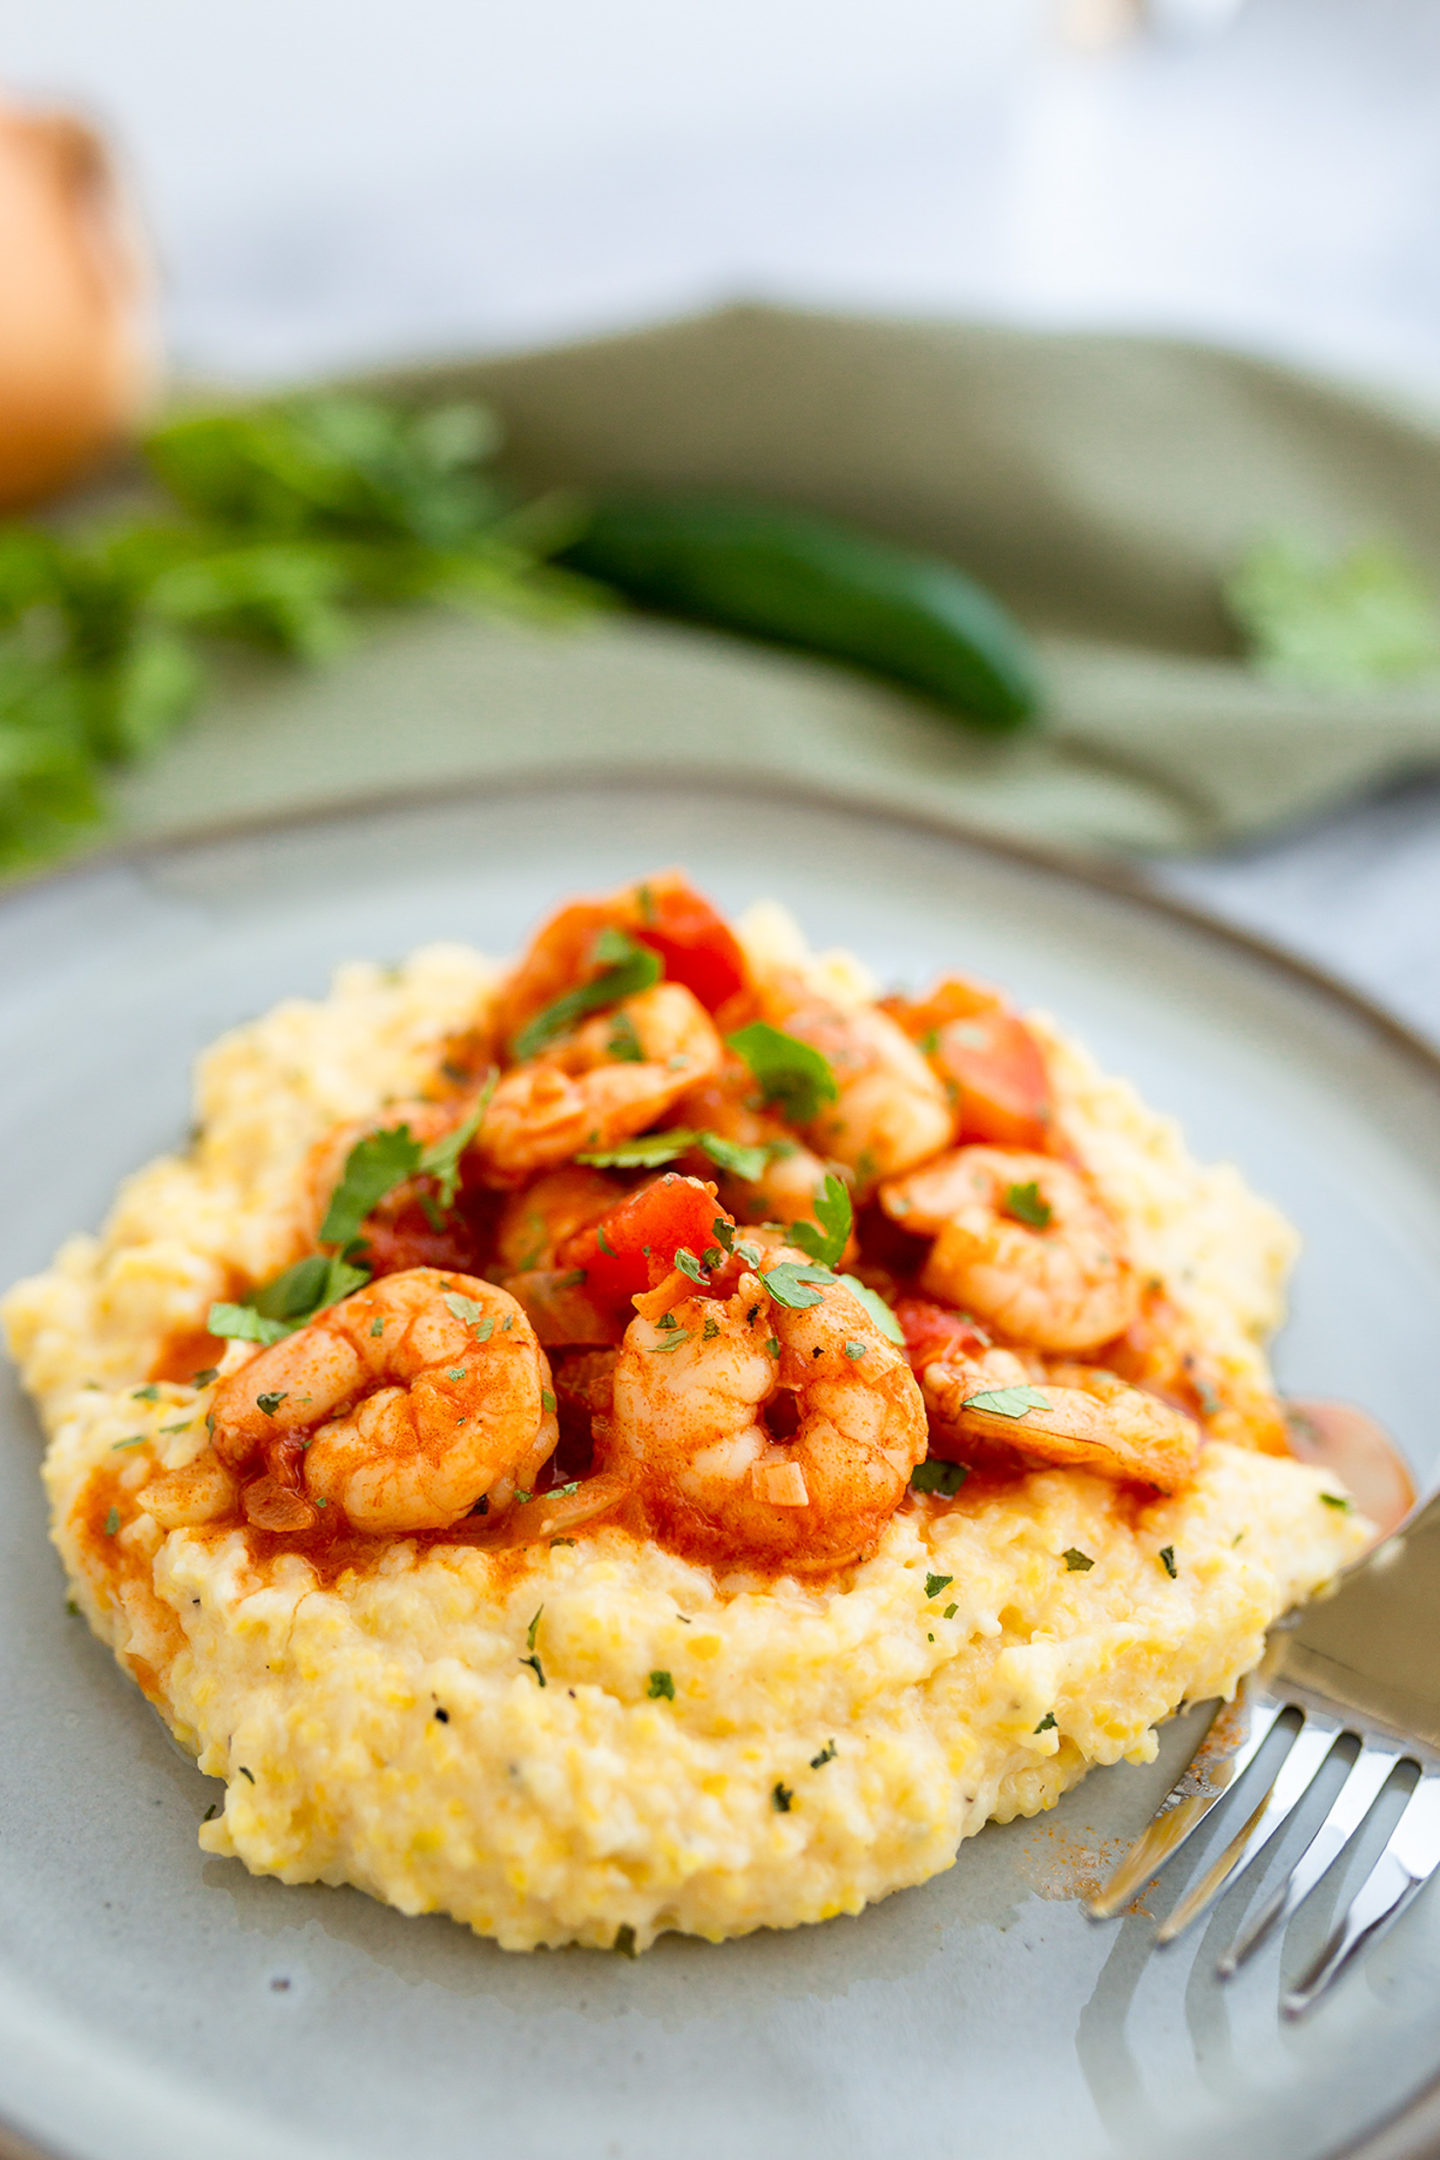 Cheesy Polenta and shrimp recipe